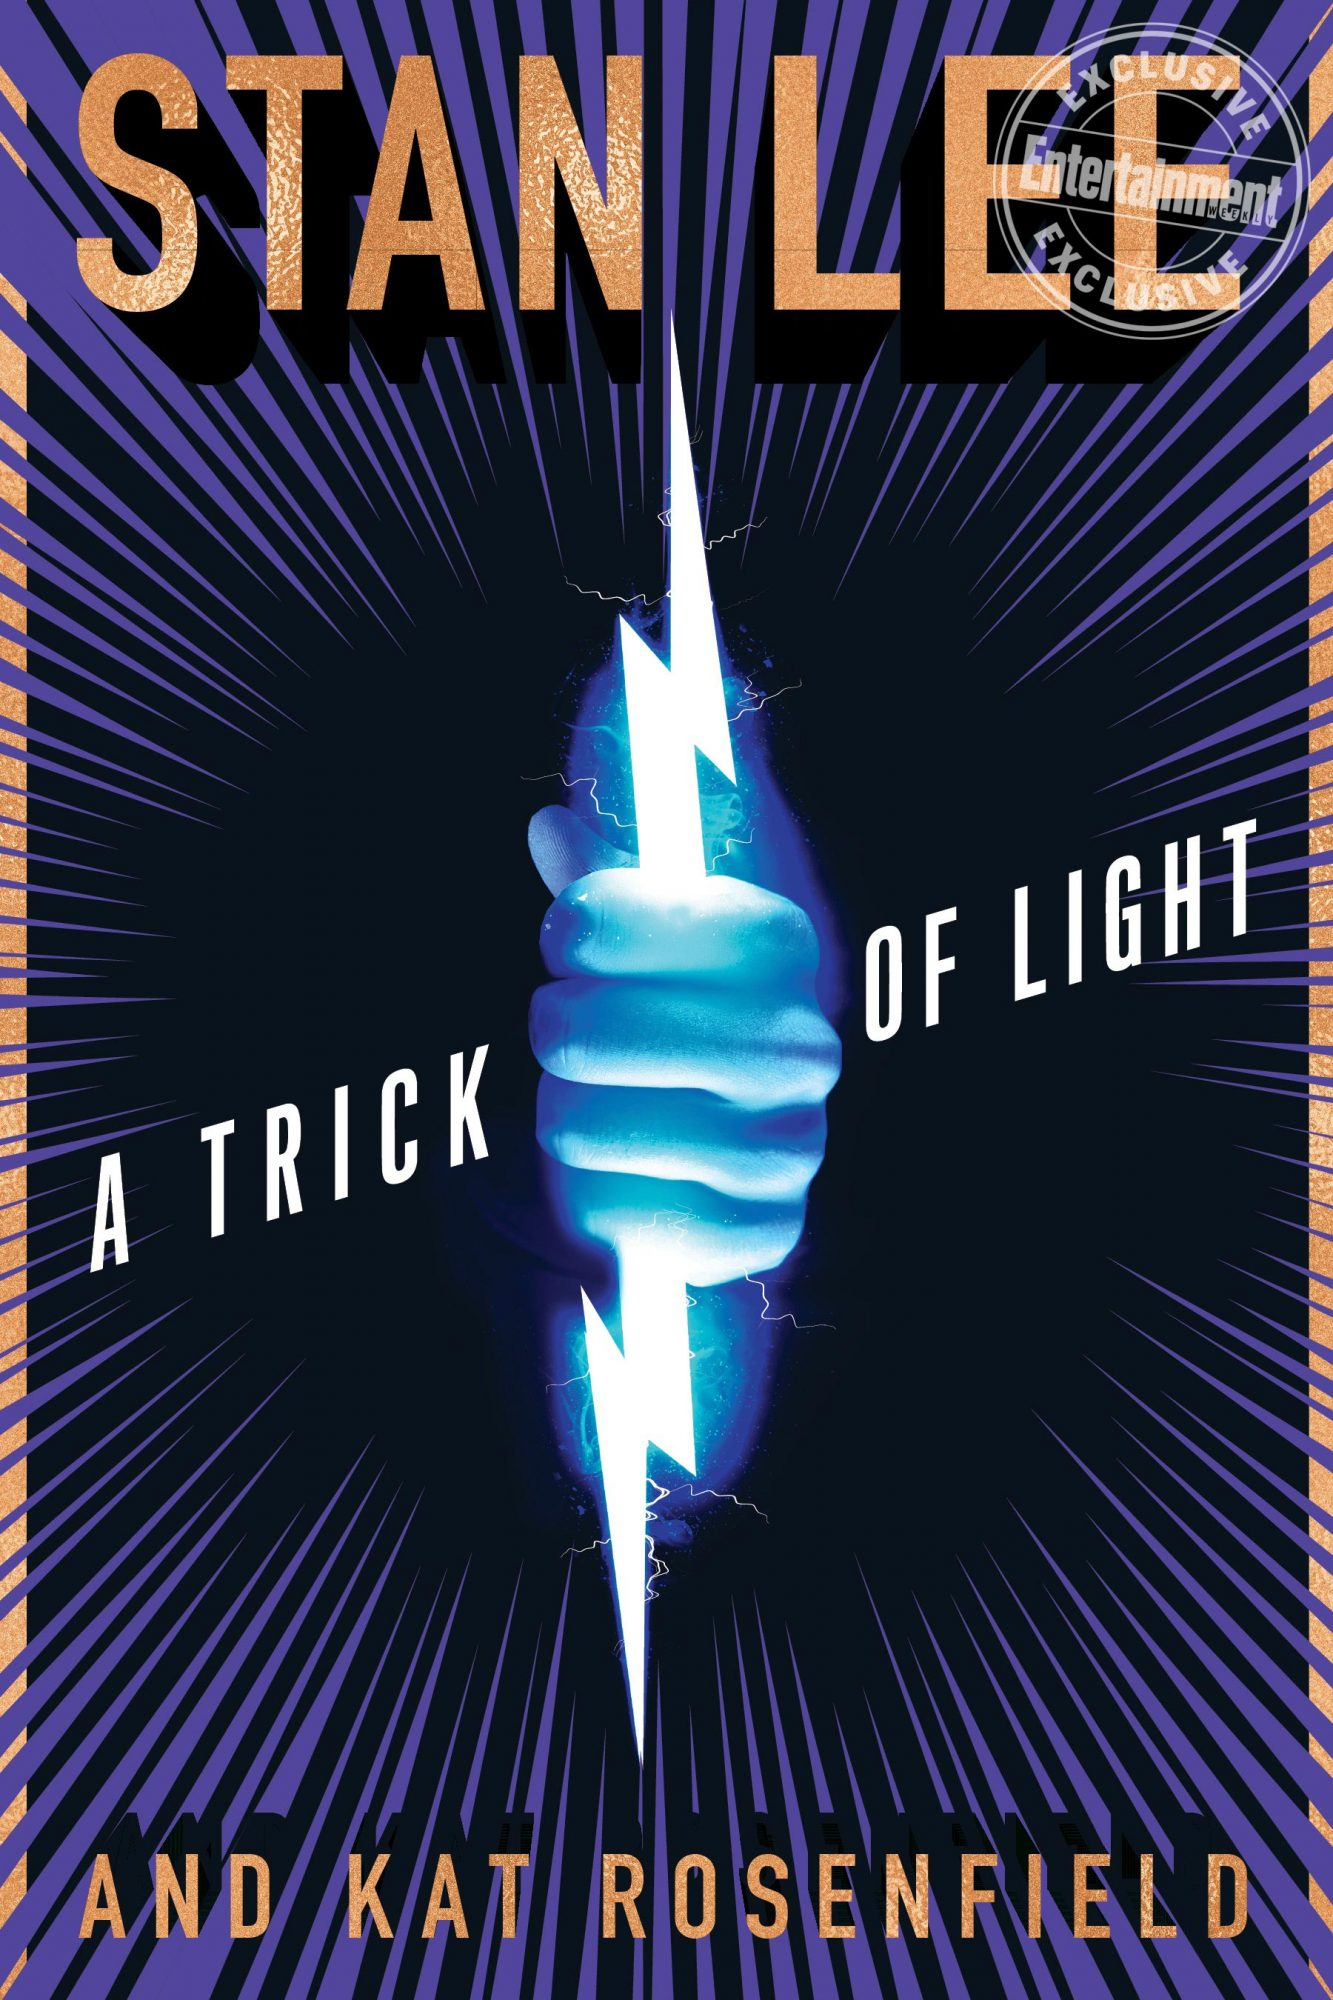 A Trick of Light by Stan Lee and Kat Rosenfield CR: HMH